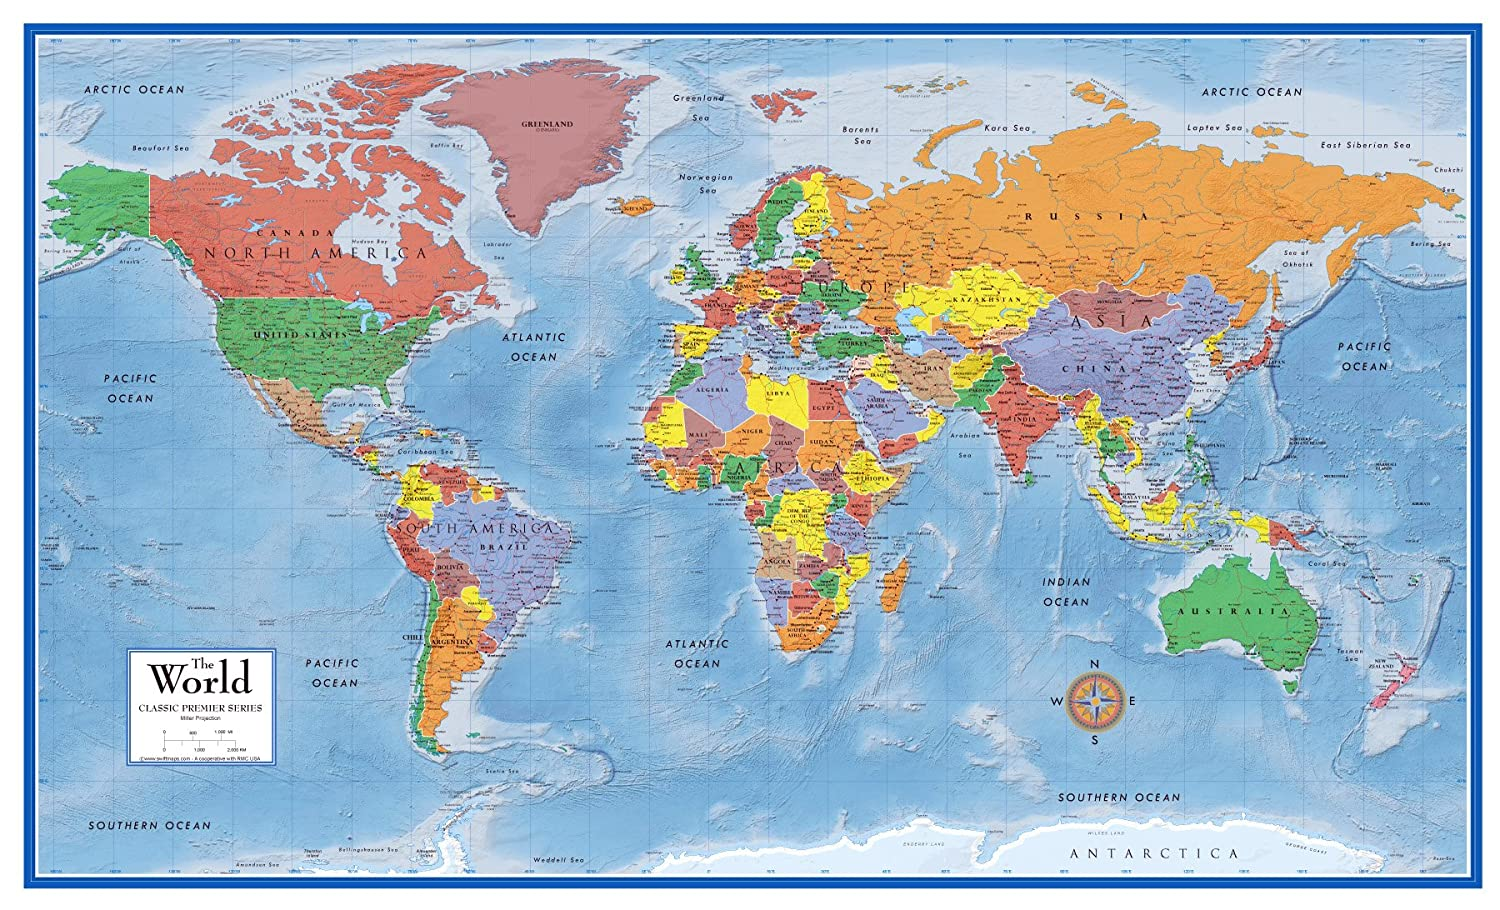 World Map Wall Poster Amazon.com: 48x78 World Classic Premier Wall Map Mega Poster  World Map Wall Poster